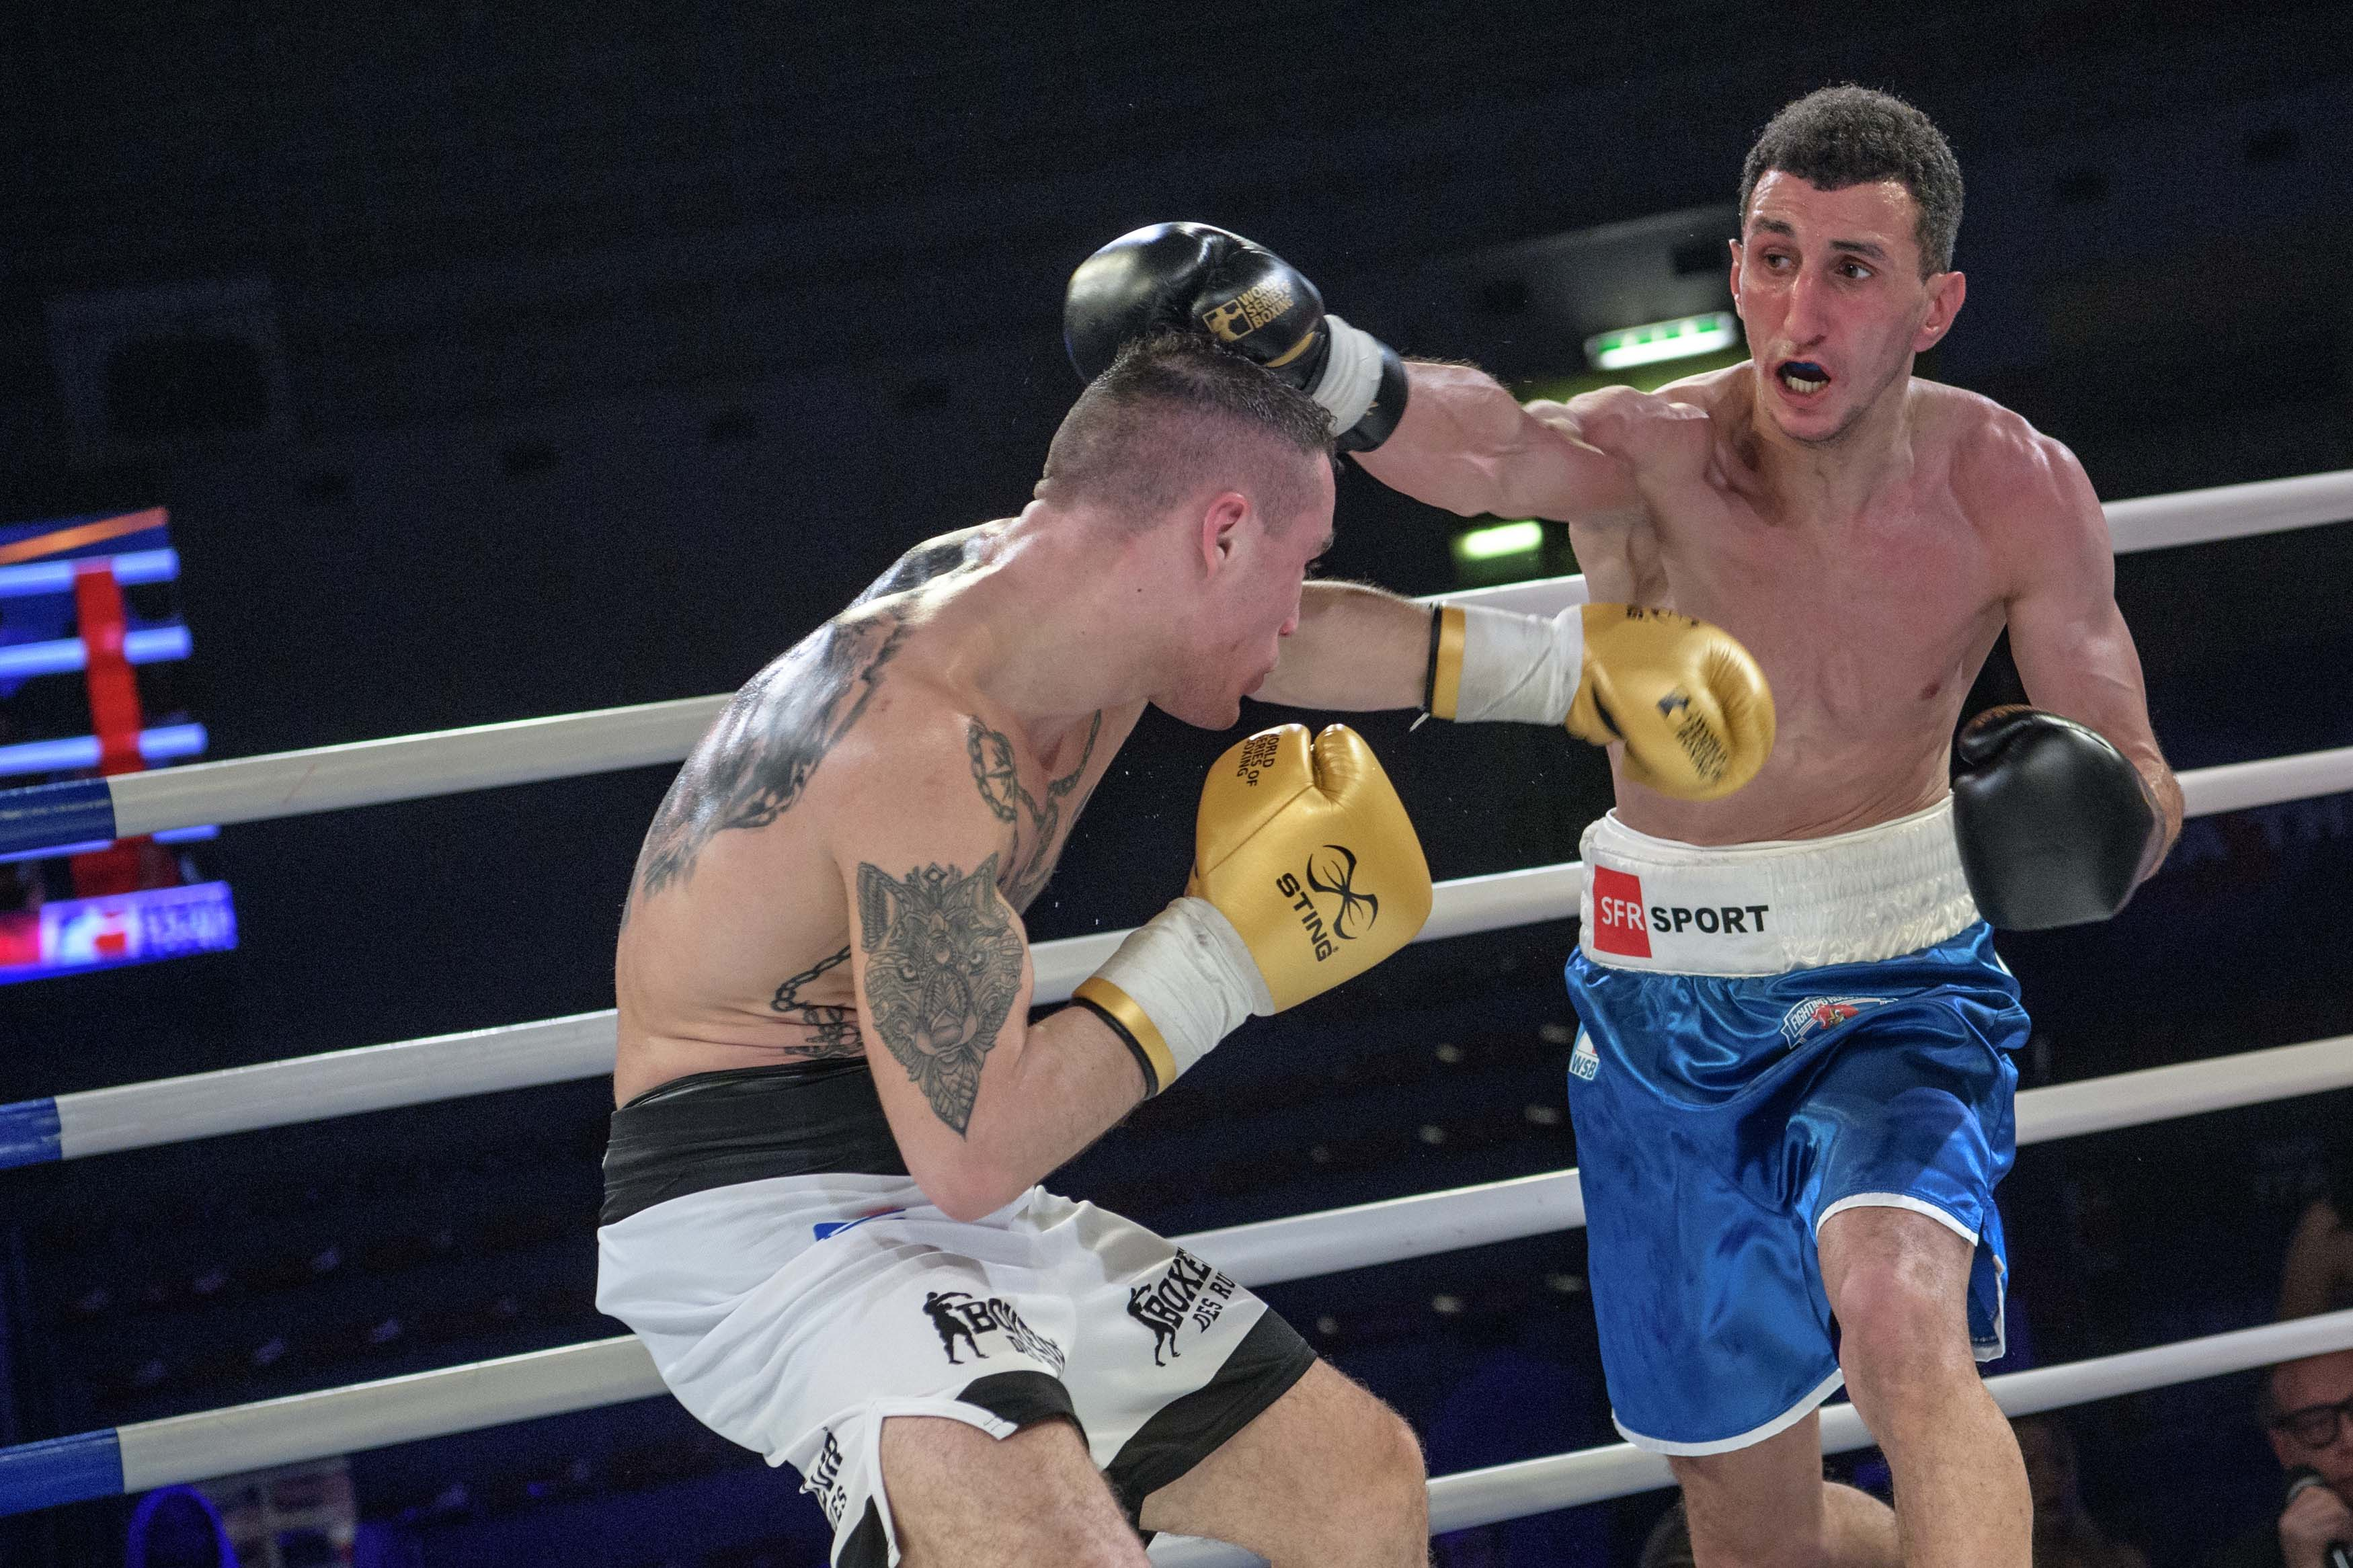 BRITISH LIONHEARTS STEAL THE SHOW IN WEEK 3 OF THE WSB